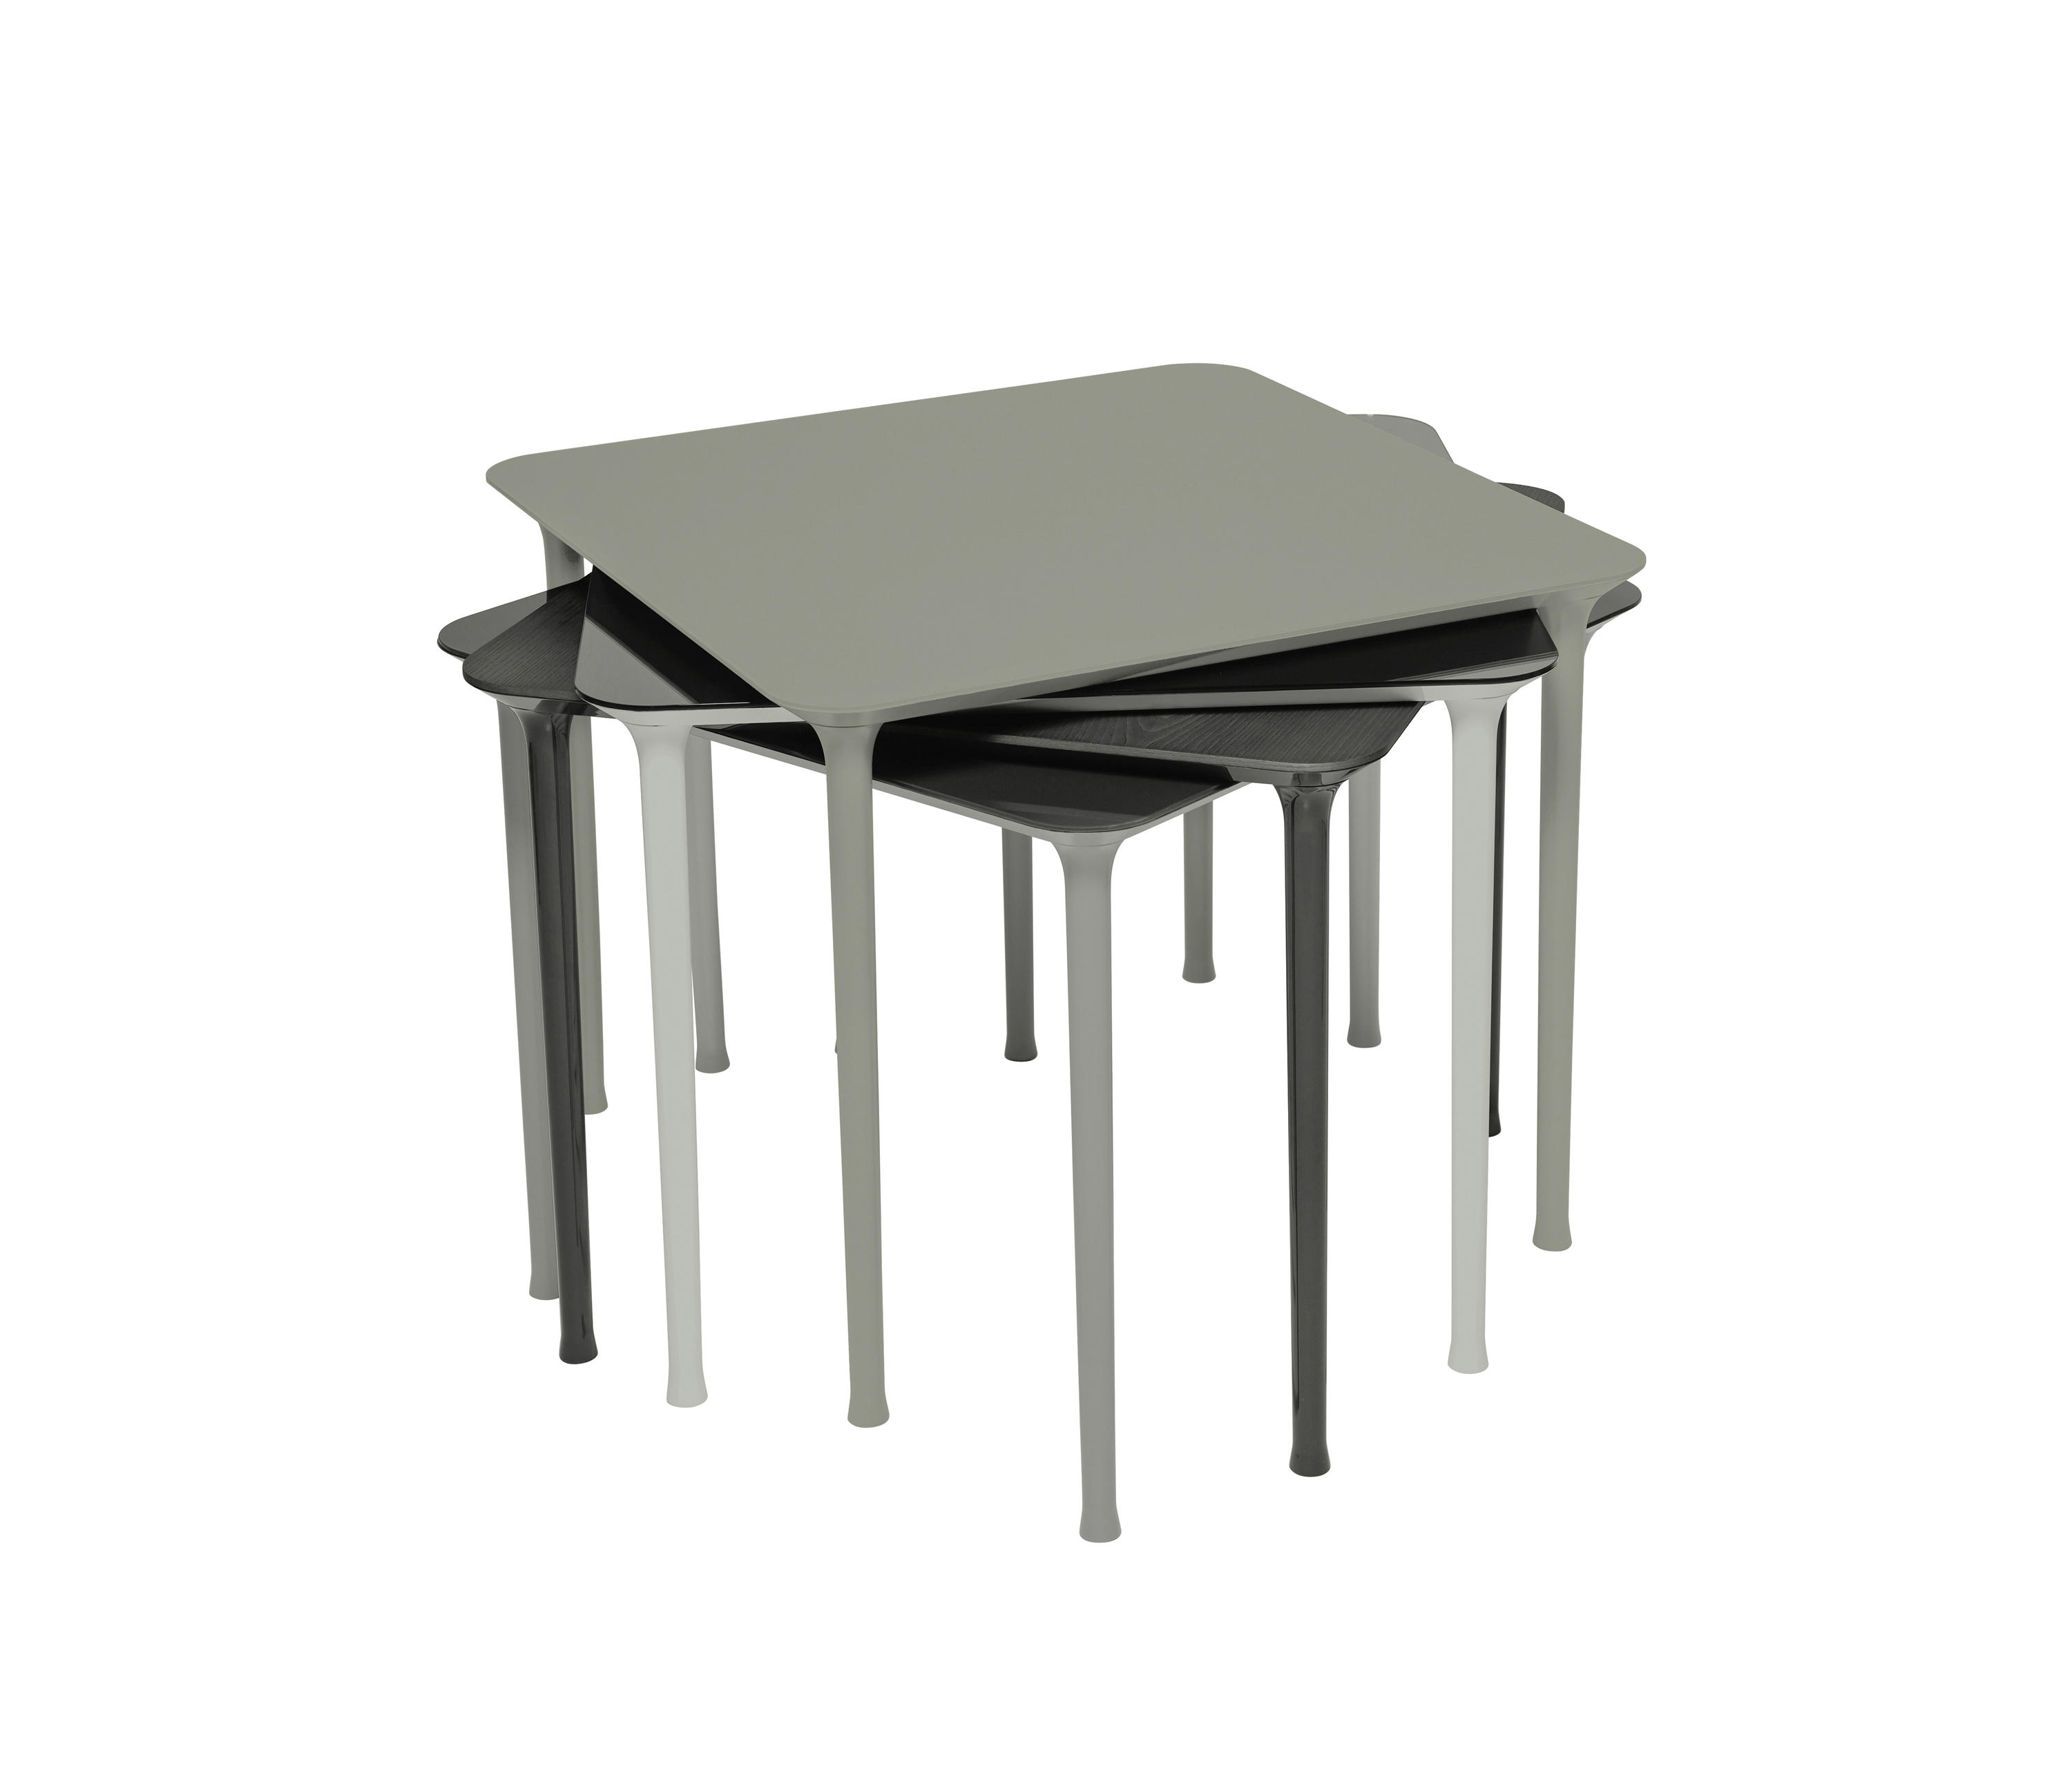 dining tables stackable  high quality designer dining tables  - spindle  multipurpose tables  tacchini italia